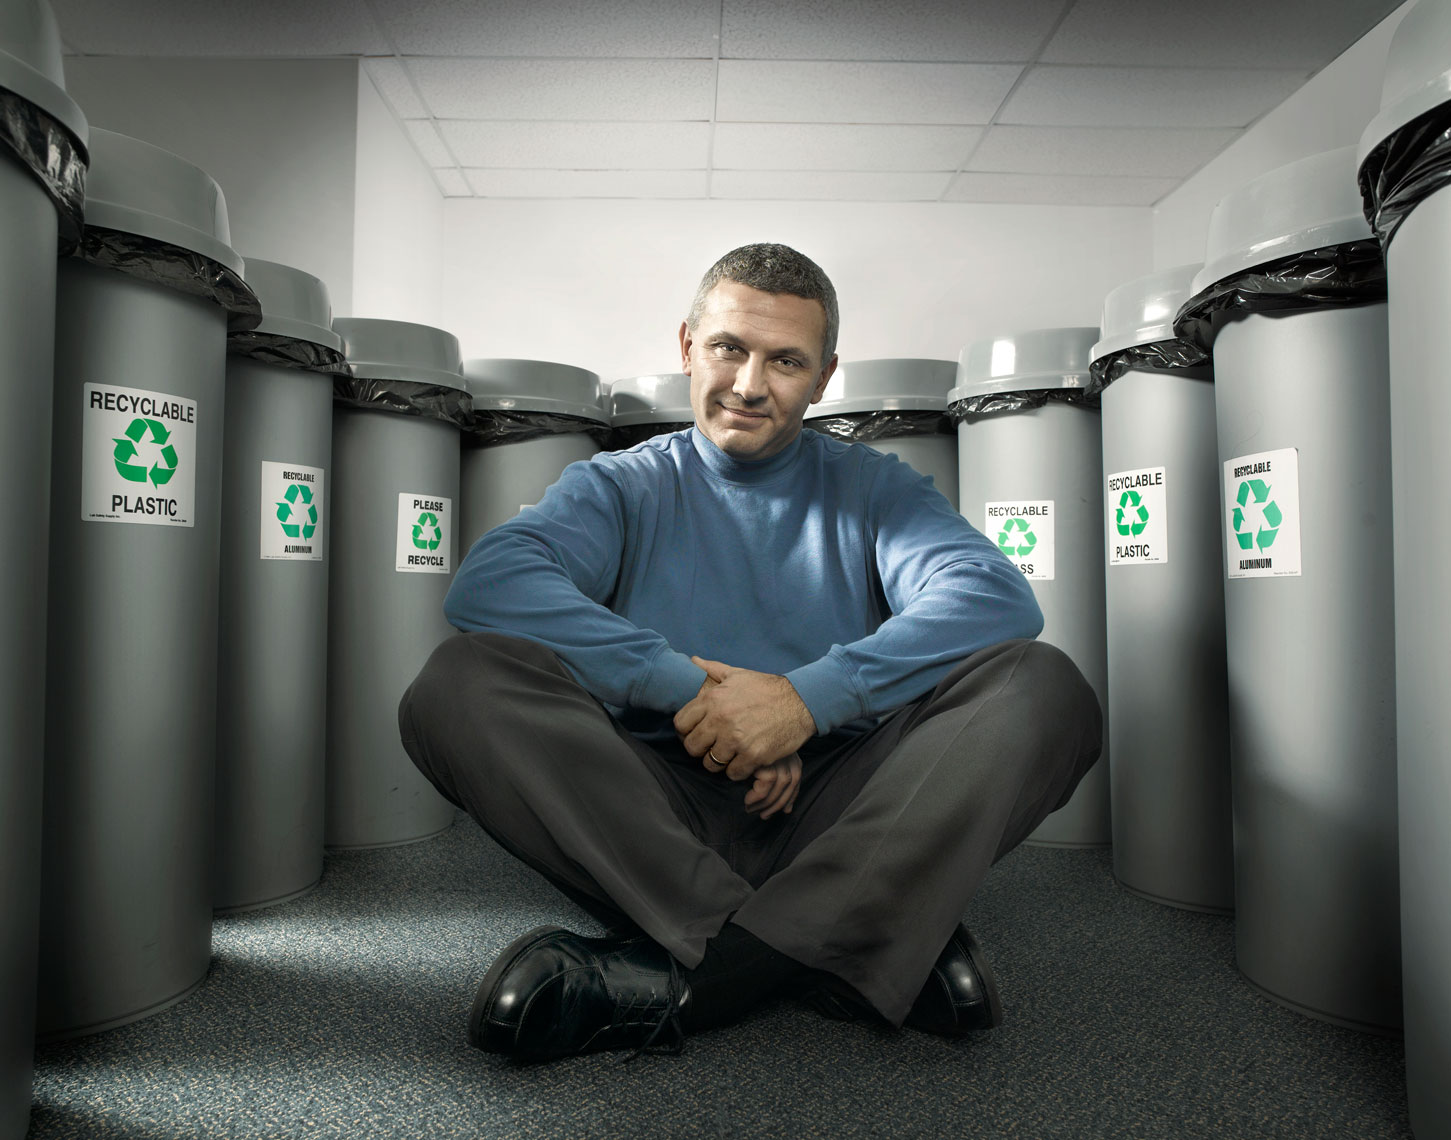 Environmental engineer sitting with recycle bins